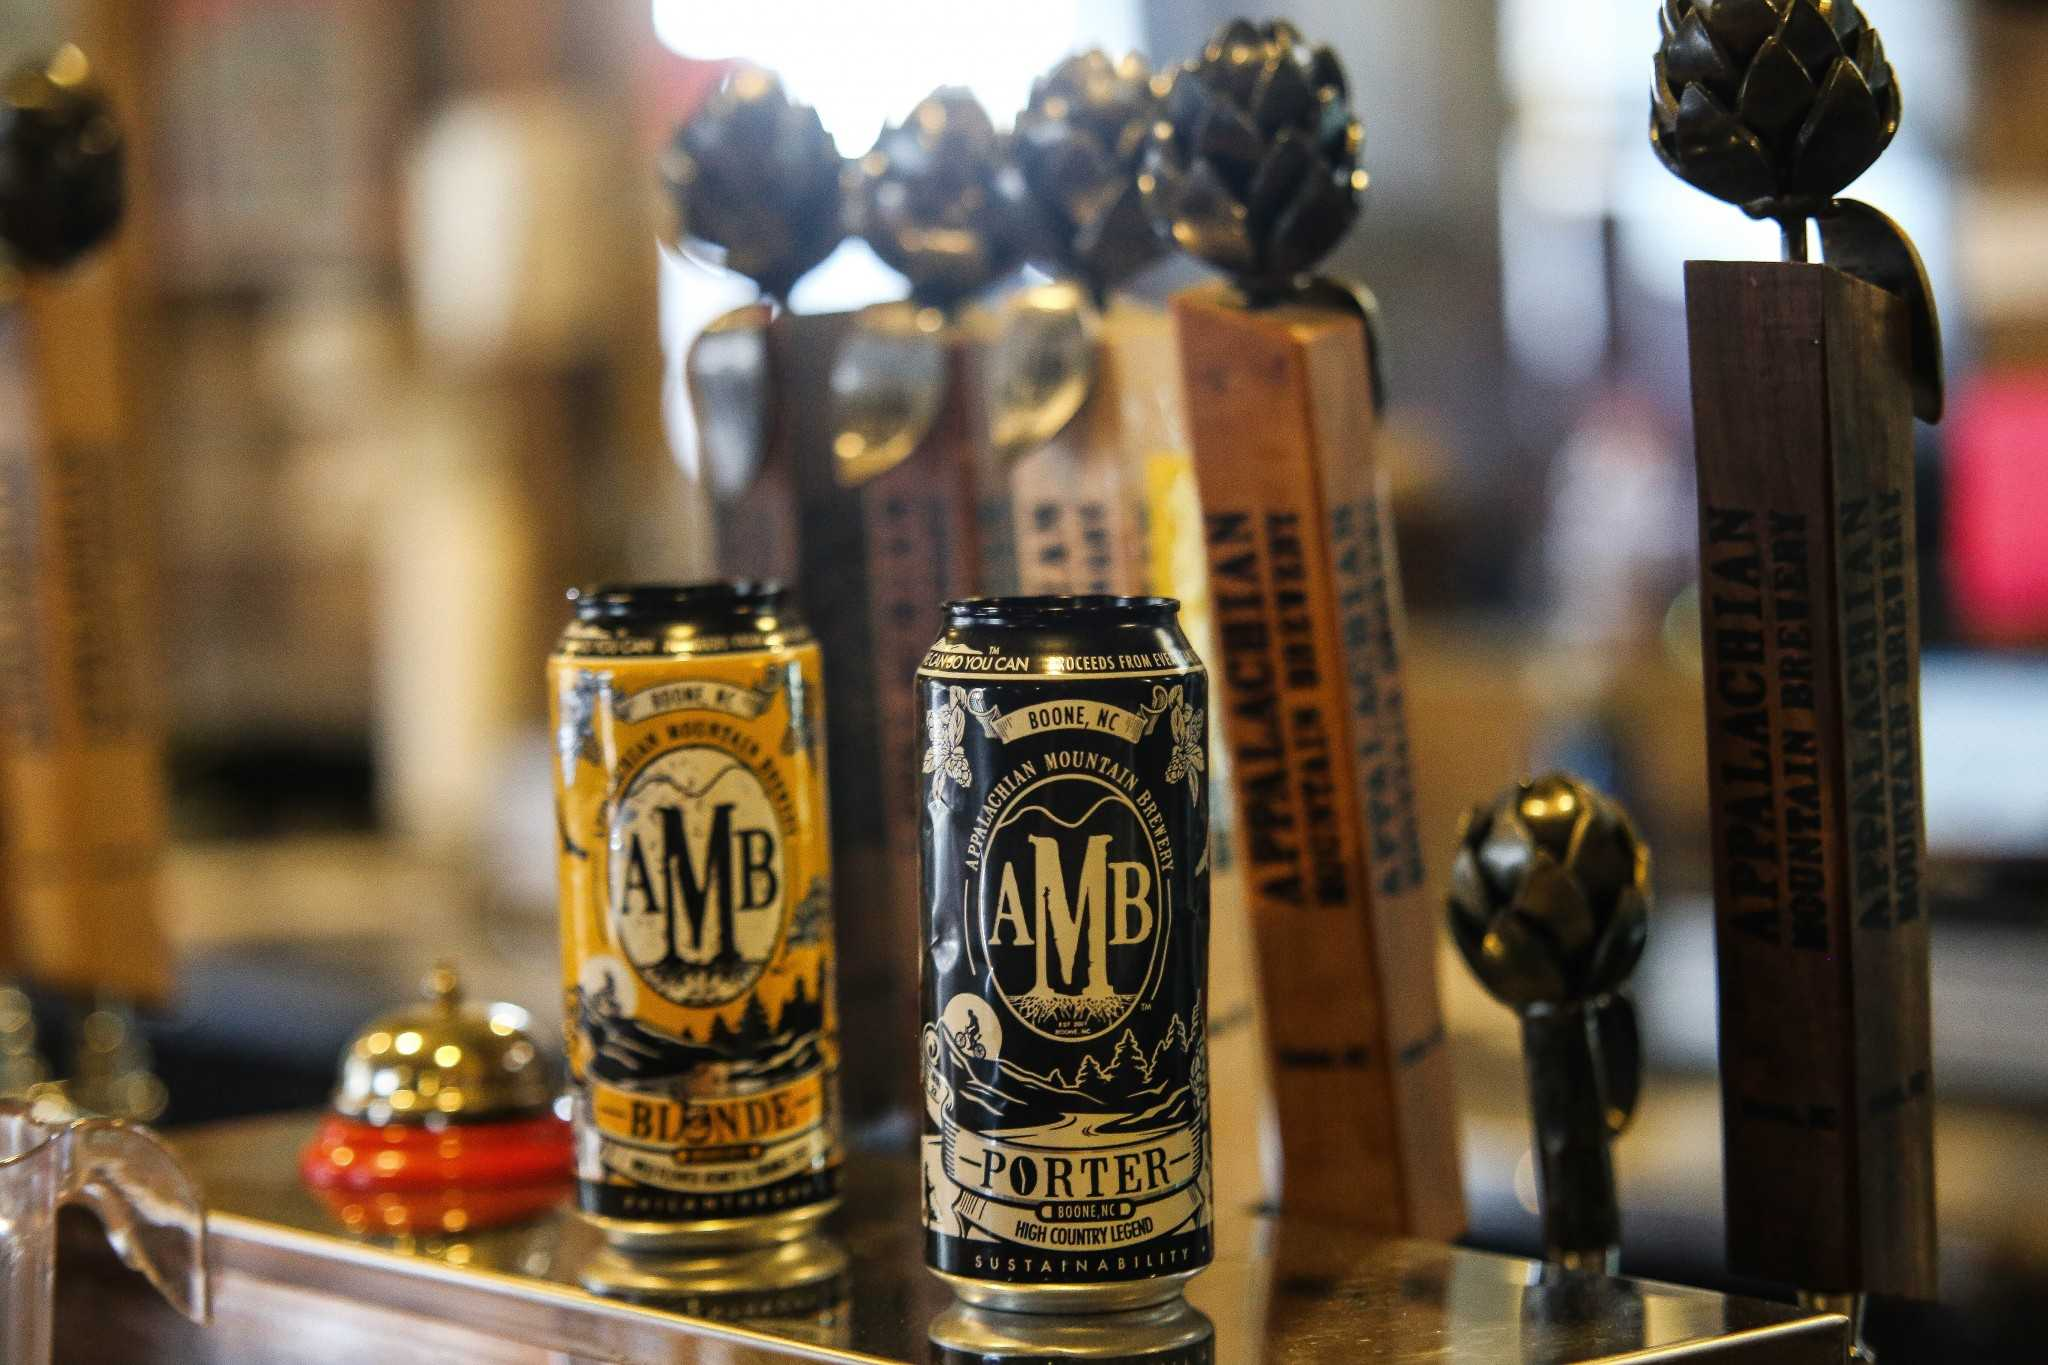 On tap: Appalachian Mountain Brewery to increase national presence